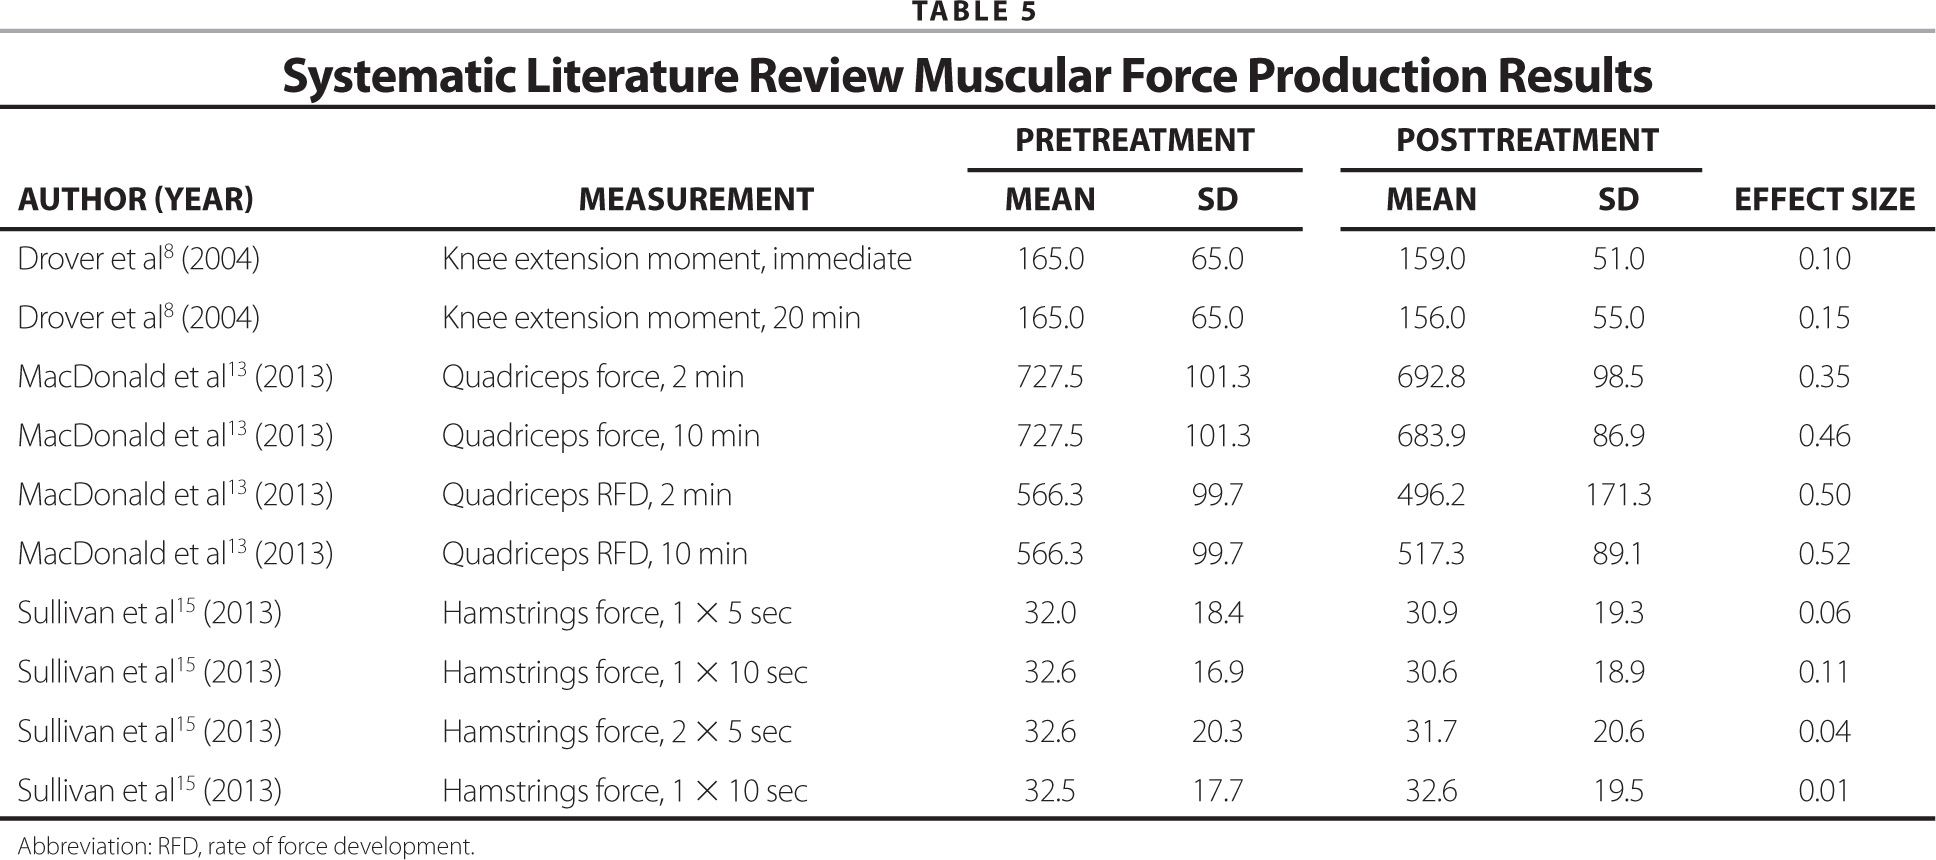 Systematic Literature Review Muscular Force Production Results